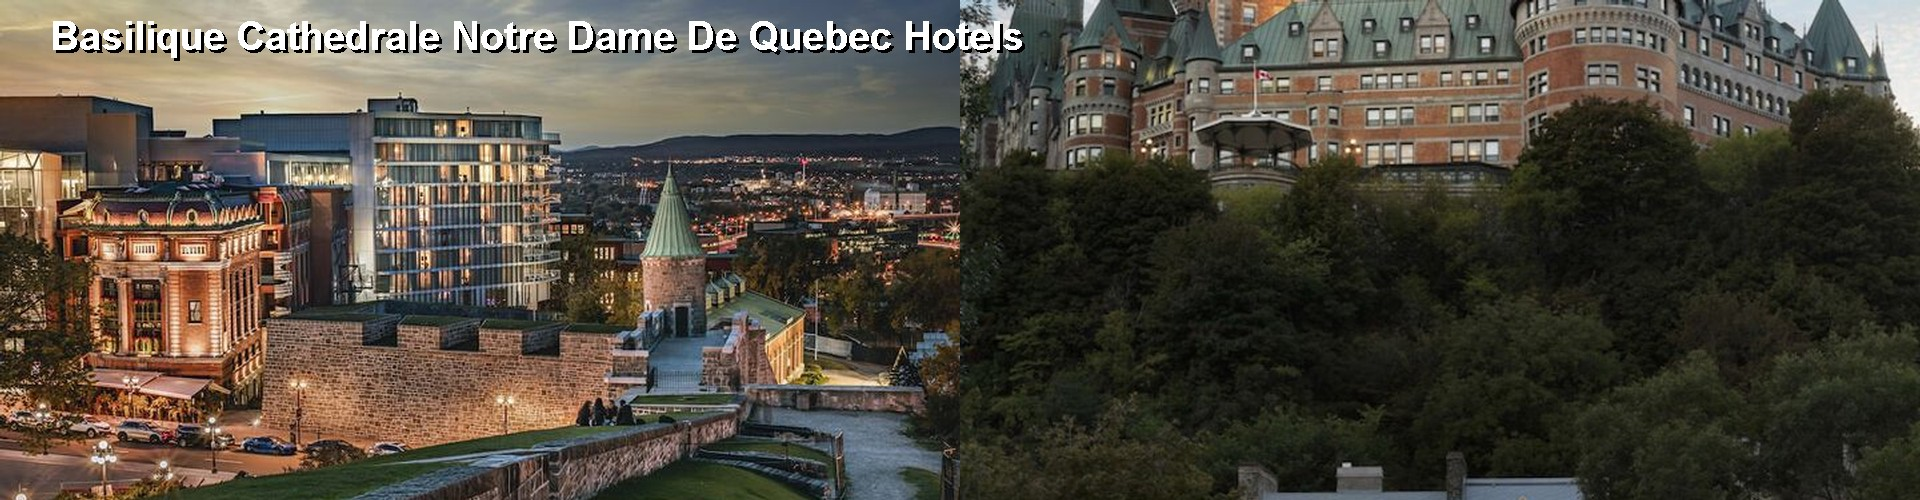 5 Best Hotels near Basilique Cathedrale Notre Dame De Quebec